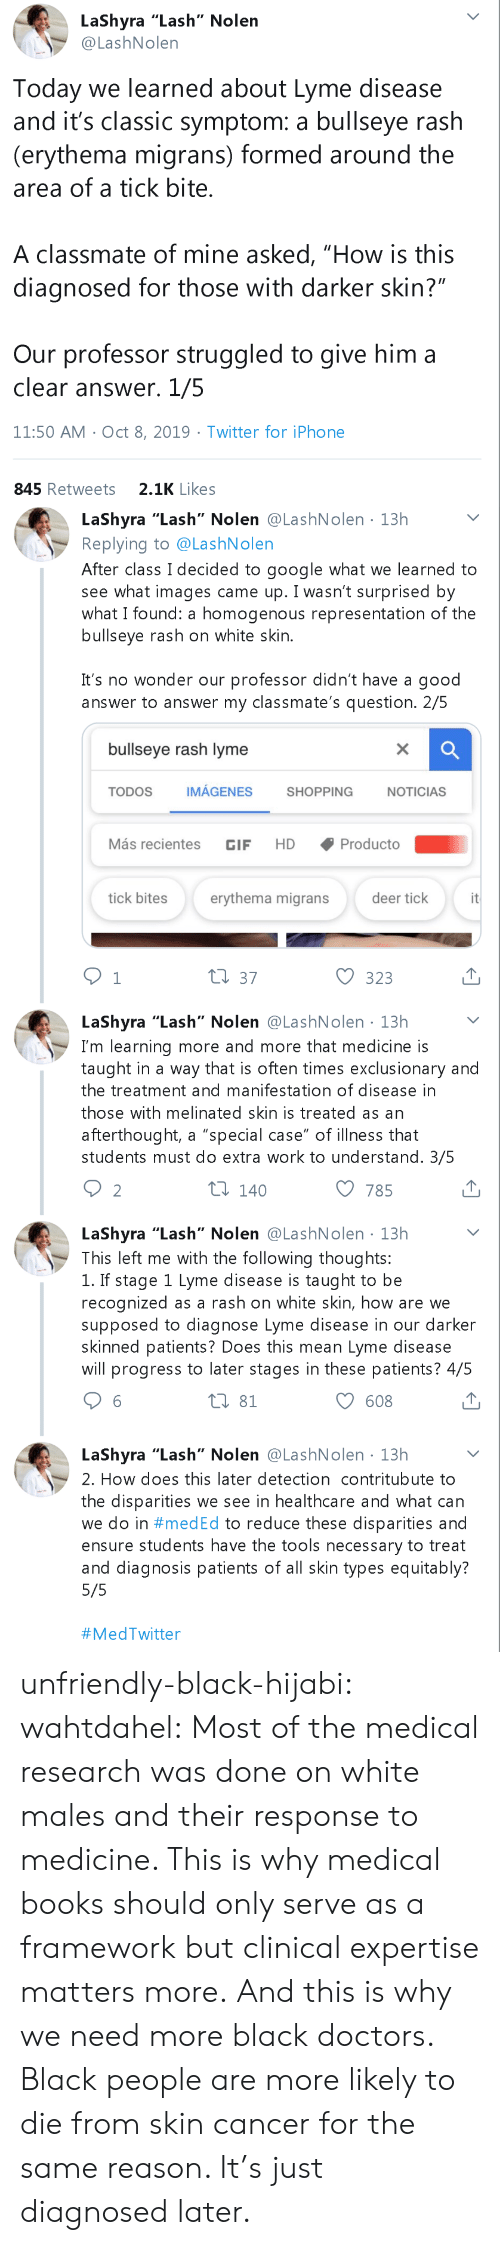 "Patients: LaShyra ""Lash"" Nolen  @LashNolen  Today we learned about Lyme disease  and it's classic symptom: a bullseye rash  (erythema migrans) formed around the  area of a tick bite.  A classmate of mine asked, ""How is this  diagnosed for those with darker skin?""  Our professor struggled to give him a  clear answer. 1/5  11:50 AM Oct 8, 2019 Twitter for iPho ne  2.1K Likes  845 Retweets   LaShyra ""Lash"" Nolen @LashNolen 13h  Replying to @LashNolen  After class I decided to google what we learned to  see what images came up. I wasn't surprised by  what I found: a homogenous representation of the  bullseye rash on white skin.  .  It's no wonder our professor didn't have a good  answer to answer my classmate's question. 2/5  bullseye rash lyme  X  IMÁGENES  TODOS  SHOPPING  NOTICIAS  Más recientes  Producto  HD  GIF  it  tick bites  erythema migrans  deer tick  t1 37  1  323  LaShyra ""Lash"" Nolen @LashNolen 13h  I'm learning more and more that medicine is  taught in a way that is often times exclusionary and  the treatment and manifestation of disease in  those with melinated skin is treated as an  afterthought, a ""special case"" of illness that  students must do extra work to understand. 3/5  ti 140  2  785  LaShyra ""Lash"" Nolen @LashNolen 13h  This left me with the following thoughts:  1. If stage 1 Lyme disease is taught to be  recognized as a rash on white skin, how are we  supposed to diagnose Lyme disease in our darker  skinned patients? Does this mean Lyme disease  will progress to later stages in these patients? 4/5  t 81  608  LaShyra ""Lash"" Nolen @LashN olen 13h  2. How does this later detection contritubute to  the disparities we see in healthcare and what can  we do in #med Ed to reduce these disparities and  ensure students have the tools necessary to treat  and diagnosis patients of all skin types equitably?  5/5  unfriendly-black-hijabi:  wahtdahel:  Most of the medical research was done on white males and their response to medicine. This is why medical books should only serve as a framework but clinical expertise matters more. And this is why we need more black doctors.     Black people are more likely to die from skin cancer for the same reason. It's just diagnosed later."